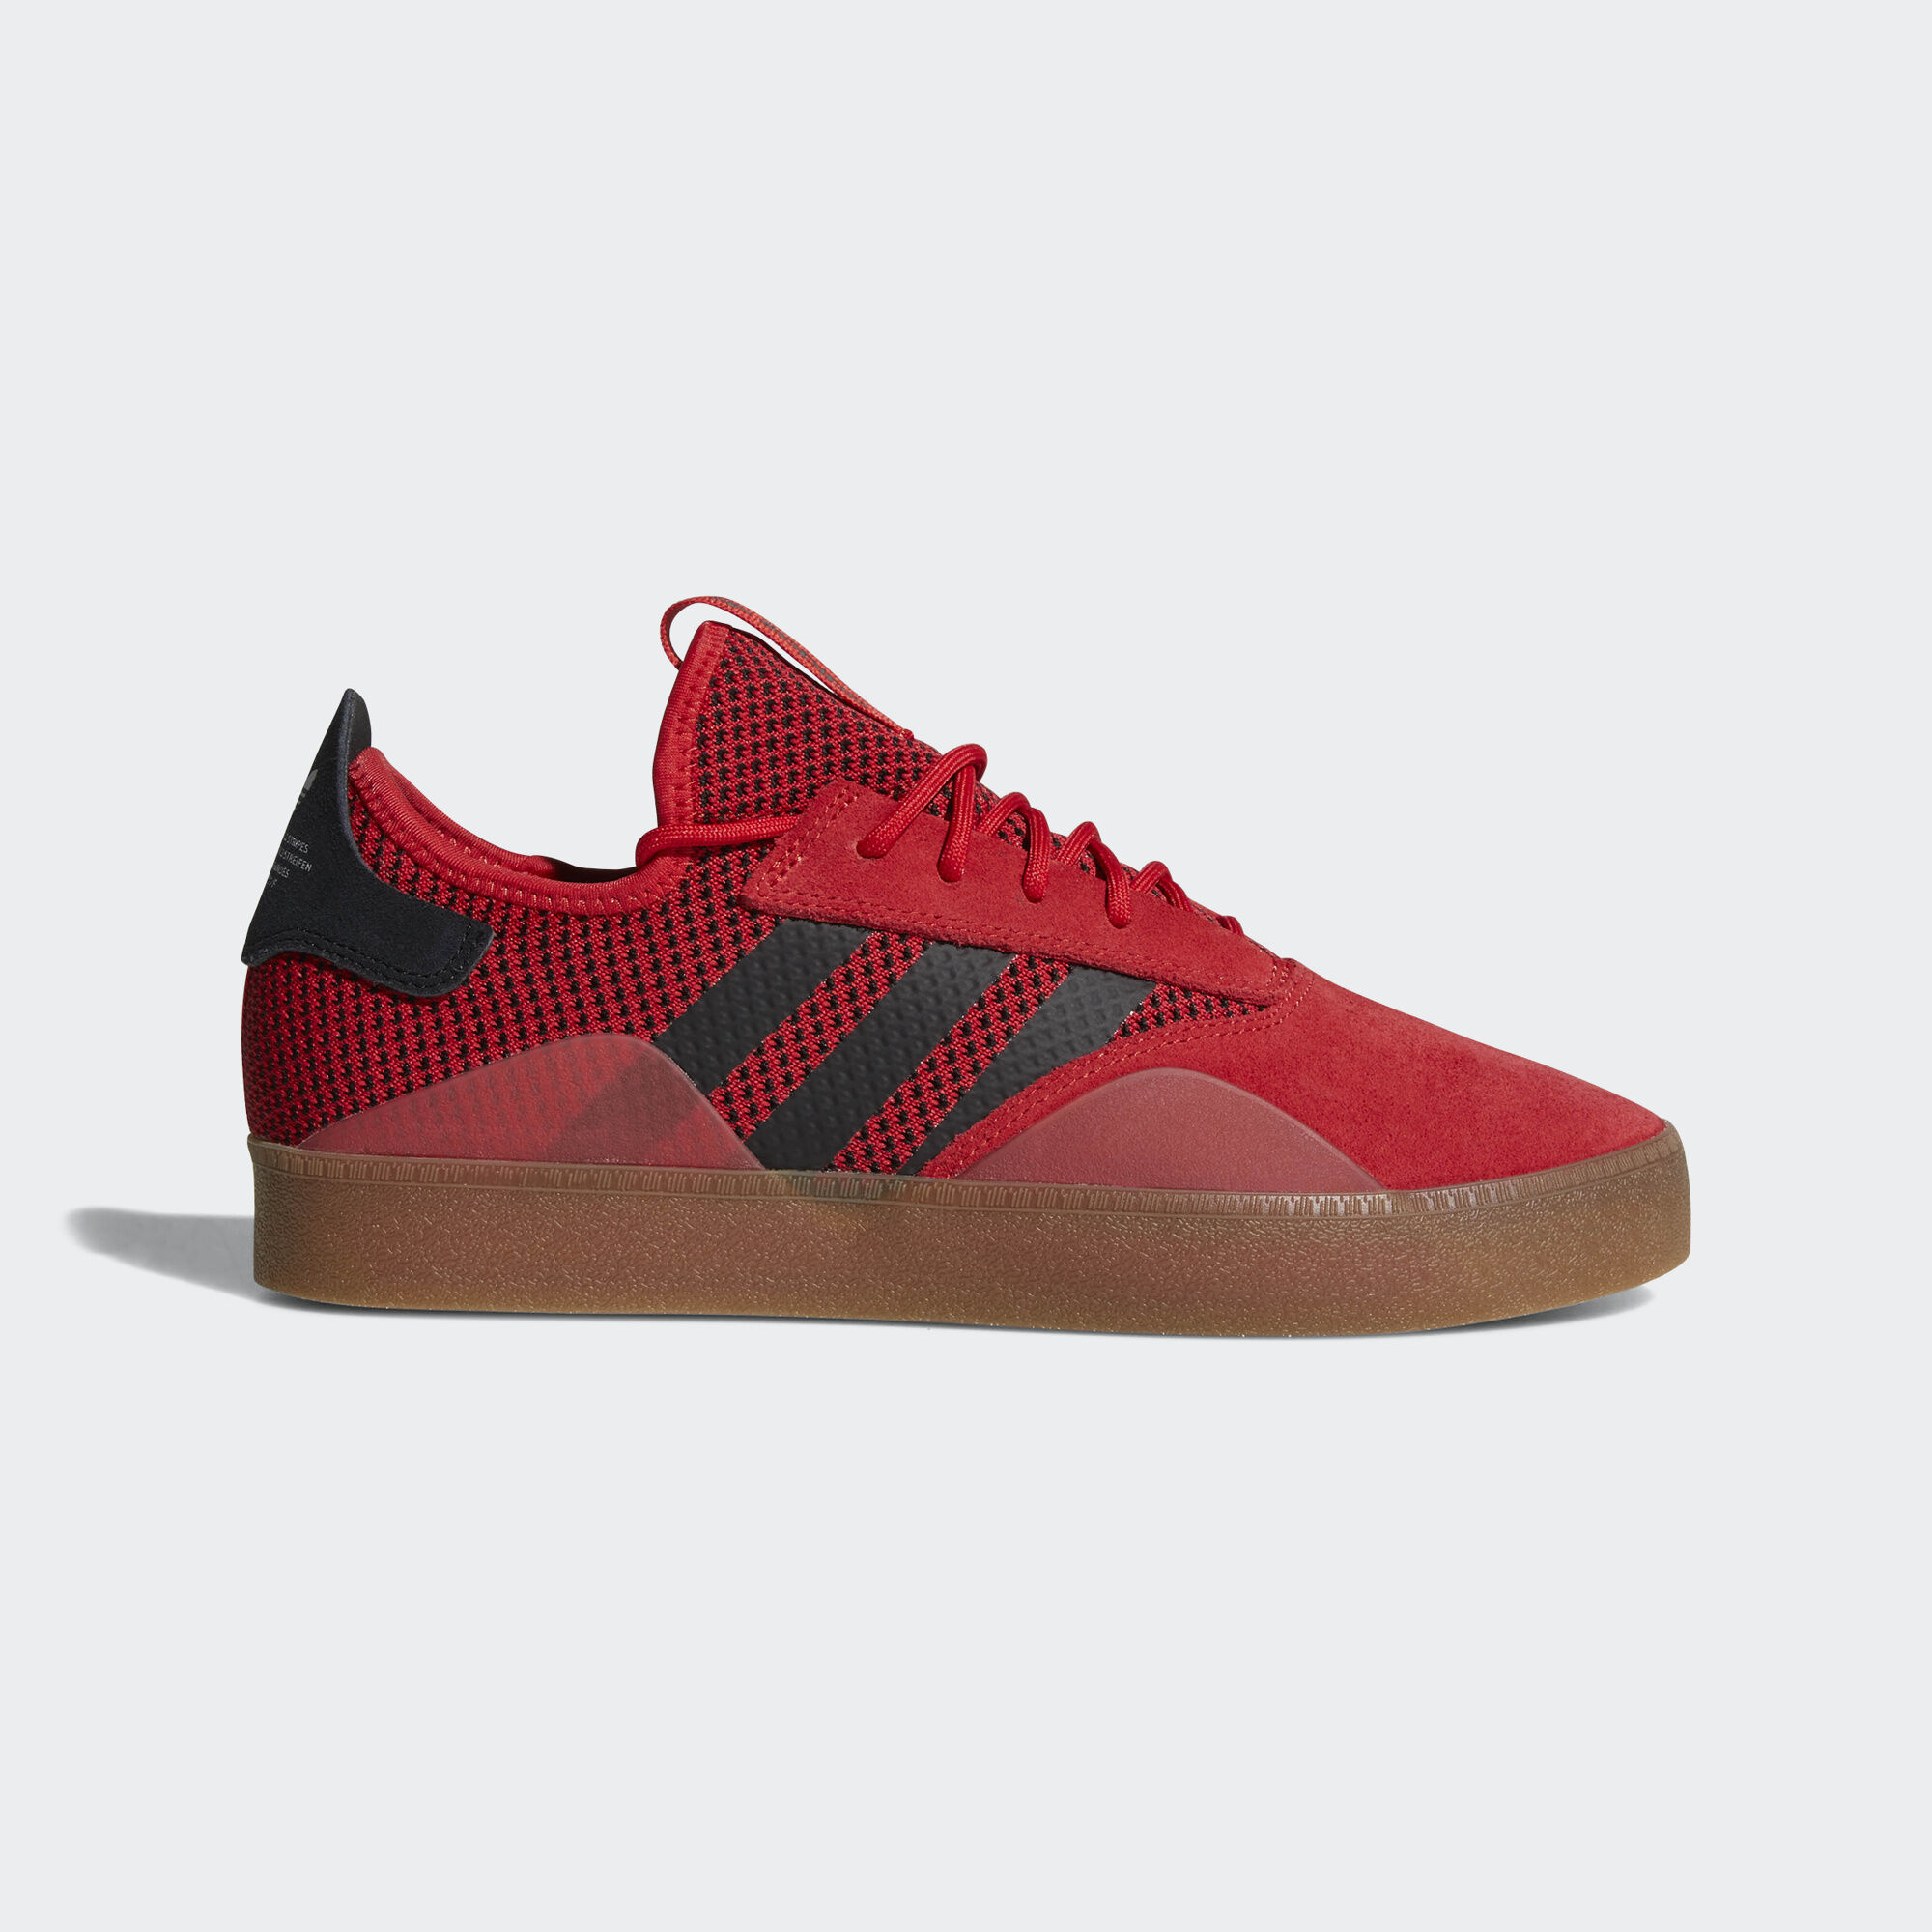 Adidas Stella Mccartney Shoes Hk